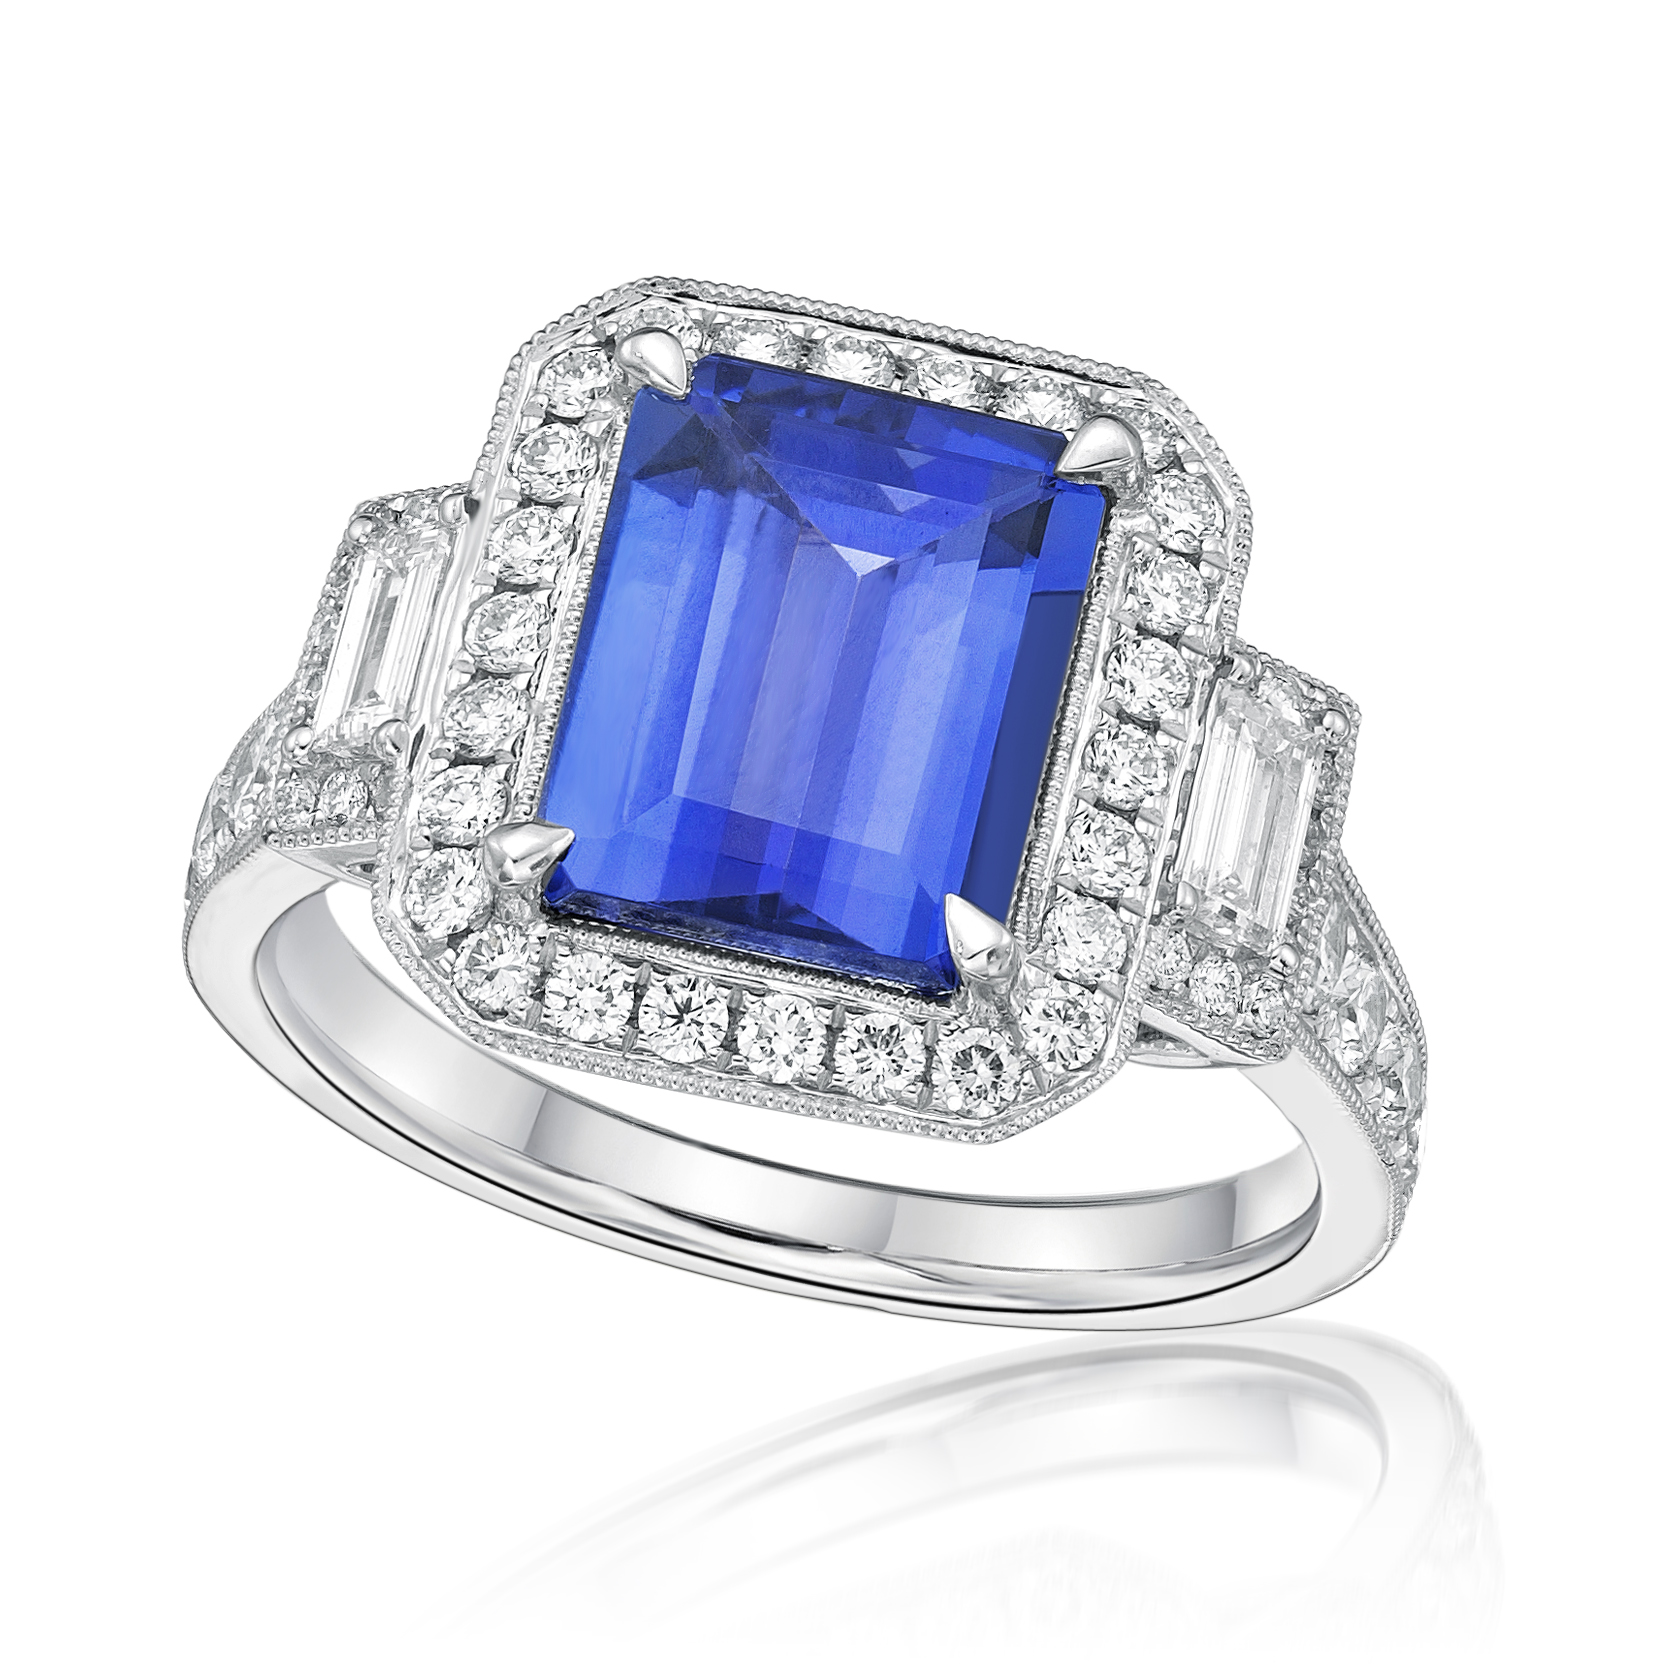 Exceptional Emerald Cut Tanzanite & Diamond Ring